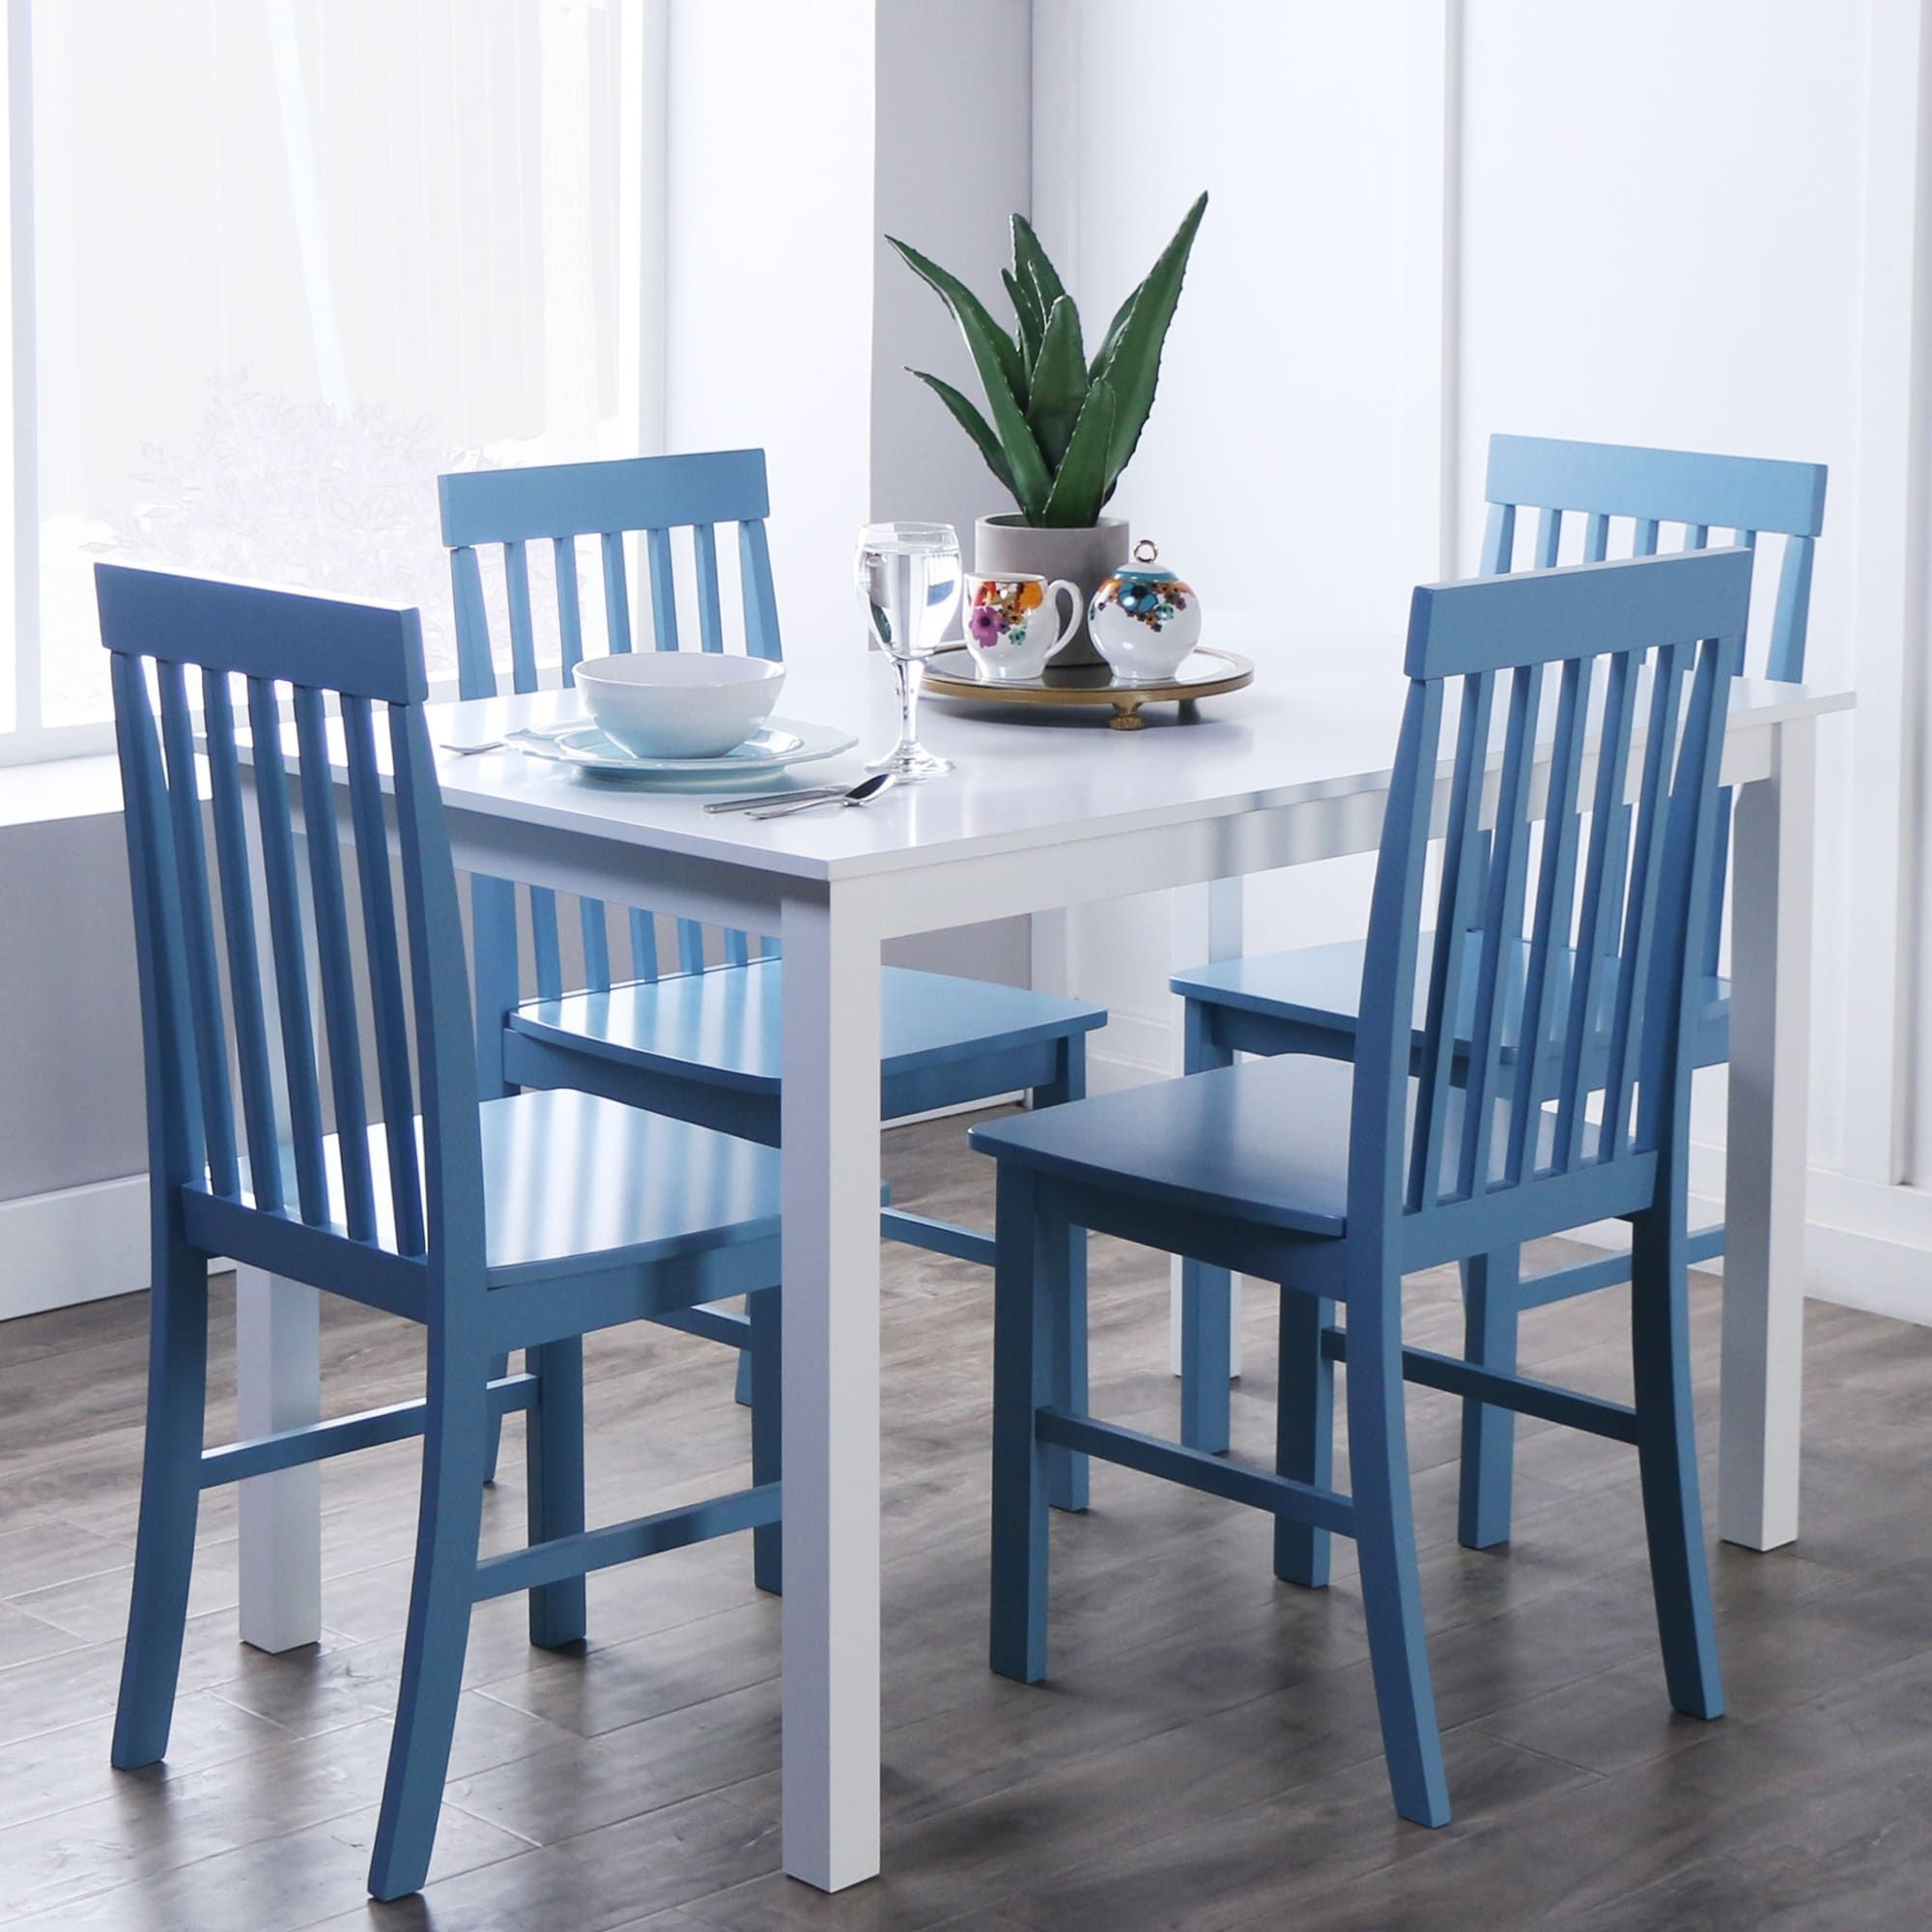 havenside home 5 piece white and powder blue dining set greyson 5 rh pinterest com